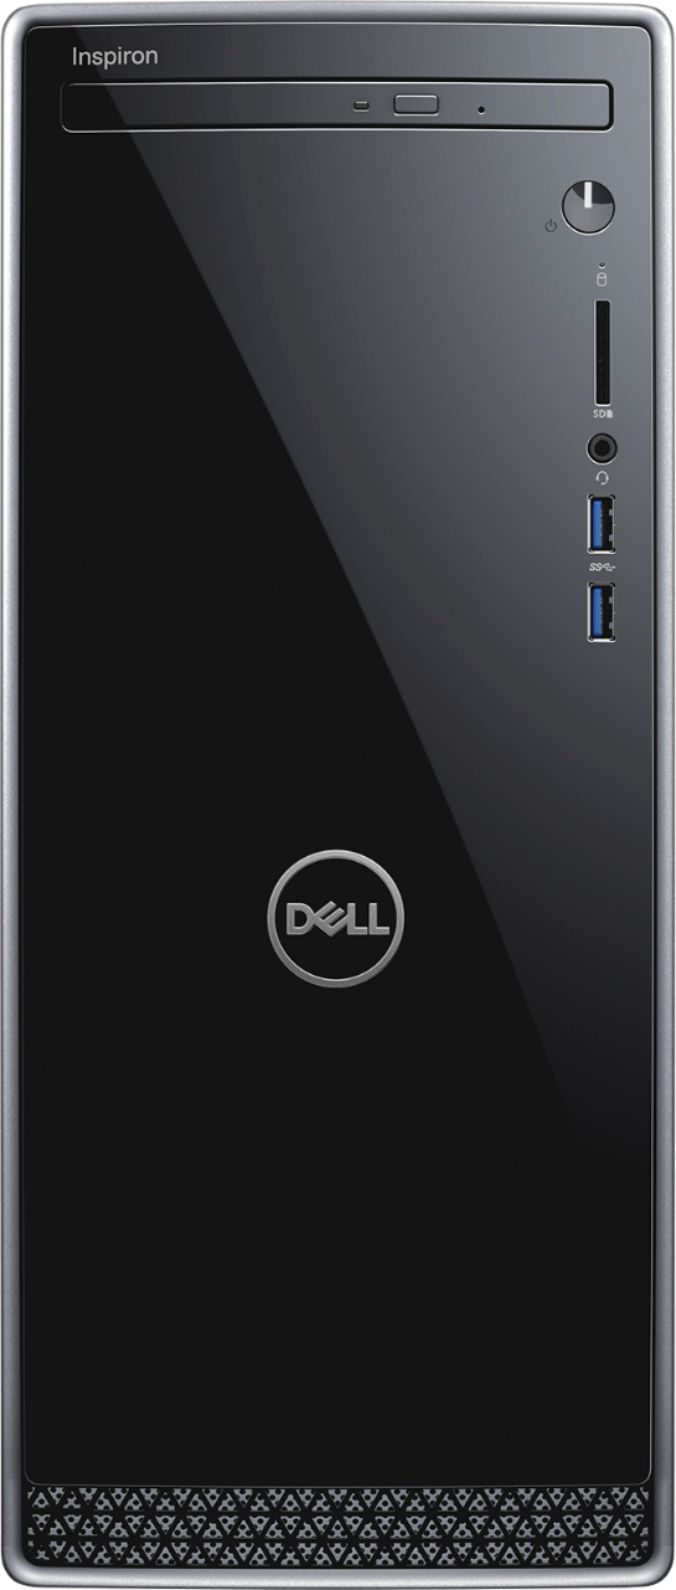 Alt View Zoom 11. Dell - Inspiron Desktop - Intel Core i5 - 12GB Memory - 256GB Solid State Drive - Black With Silver Trim.